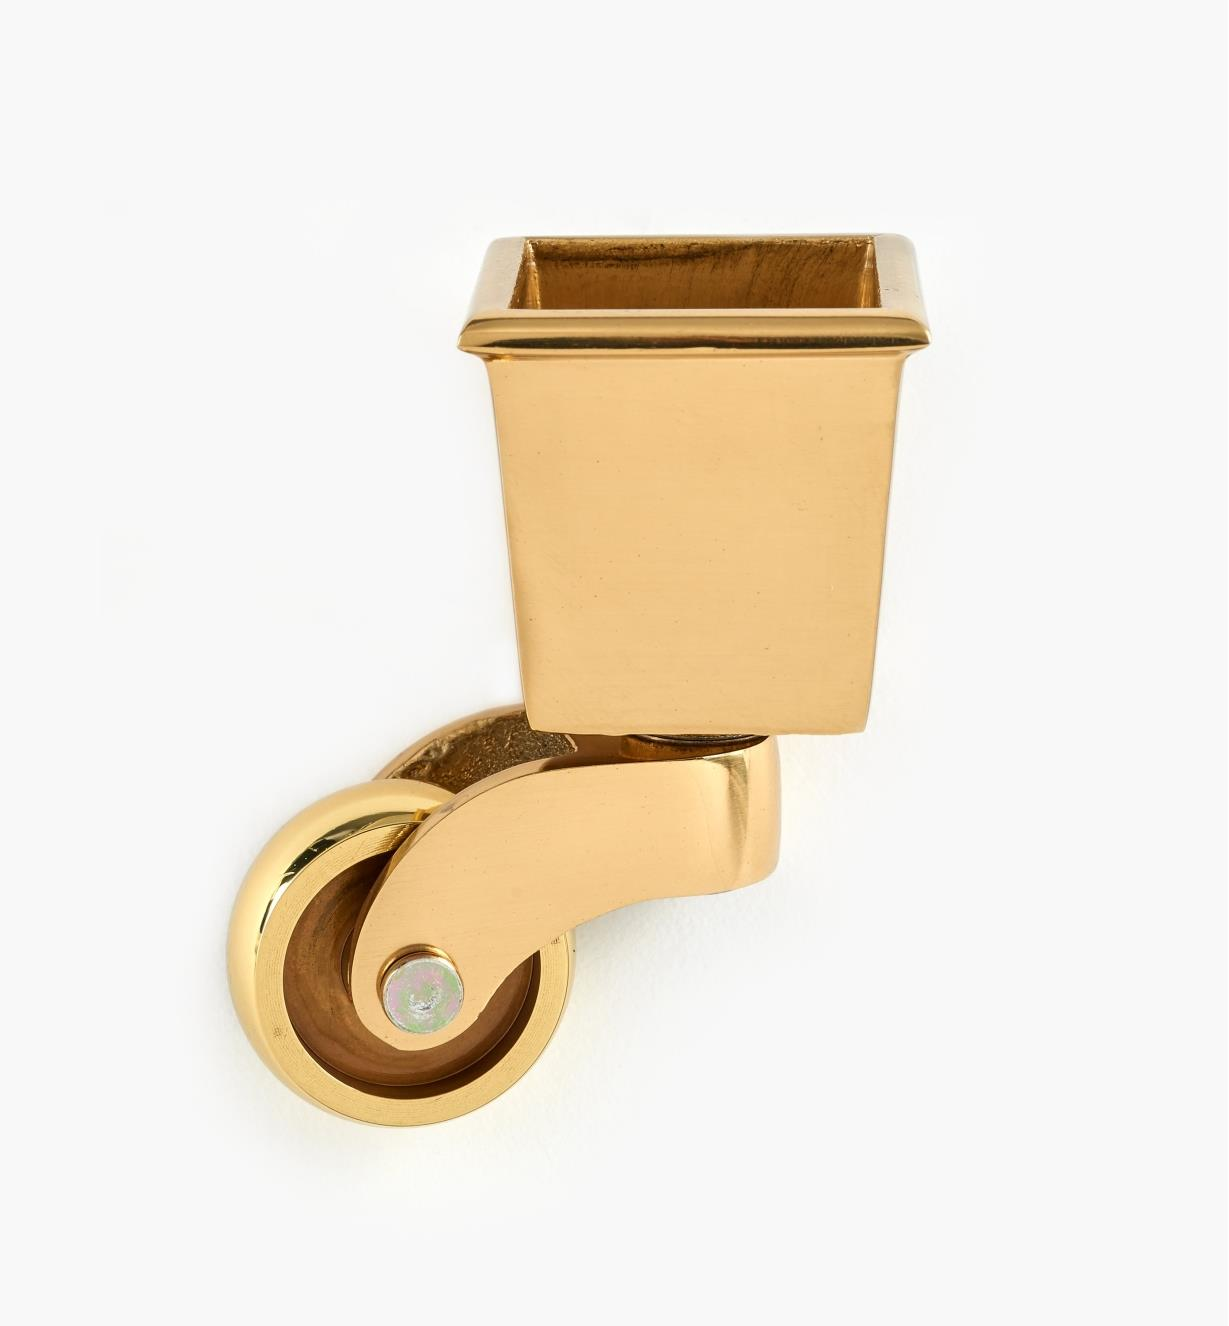 00W9870 - Polished Brass Caster, each